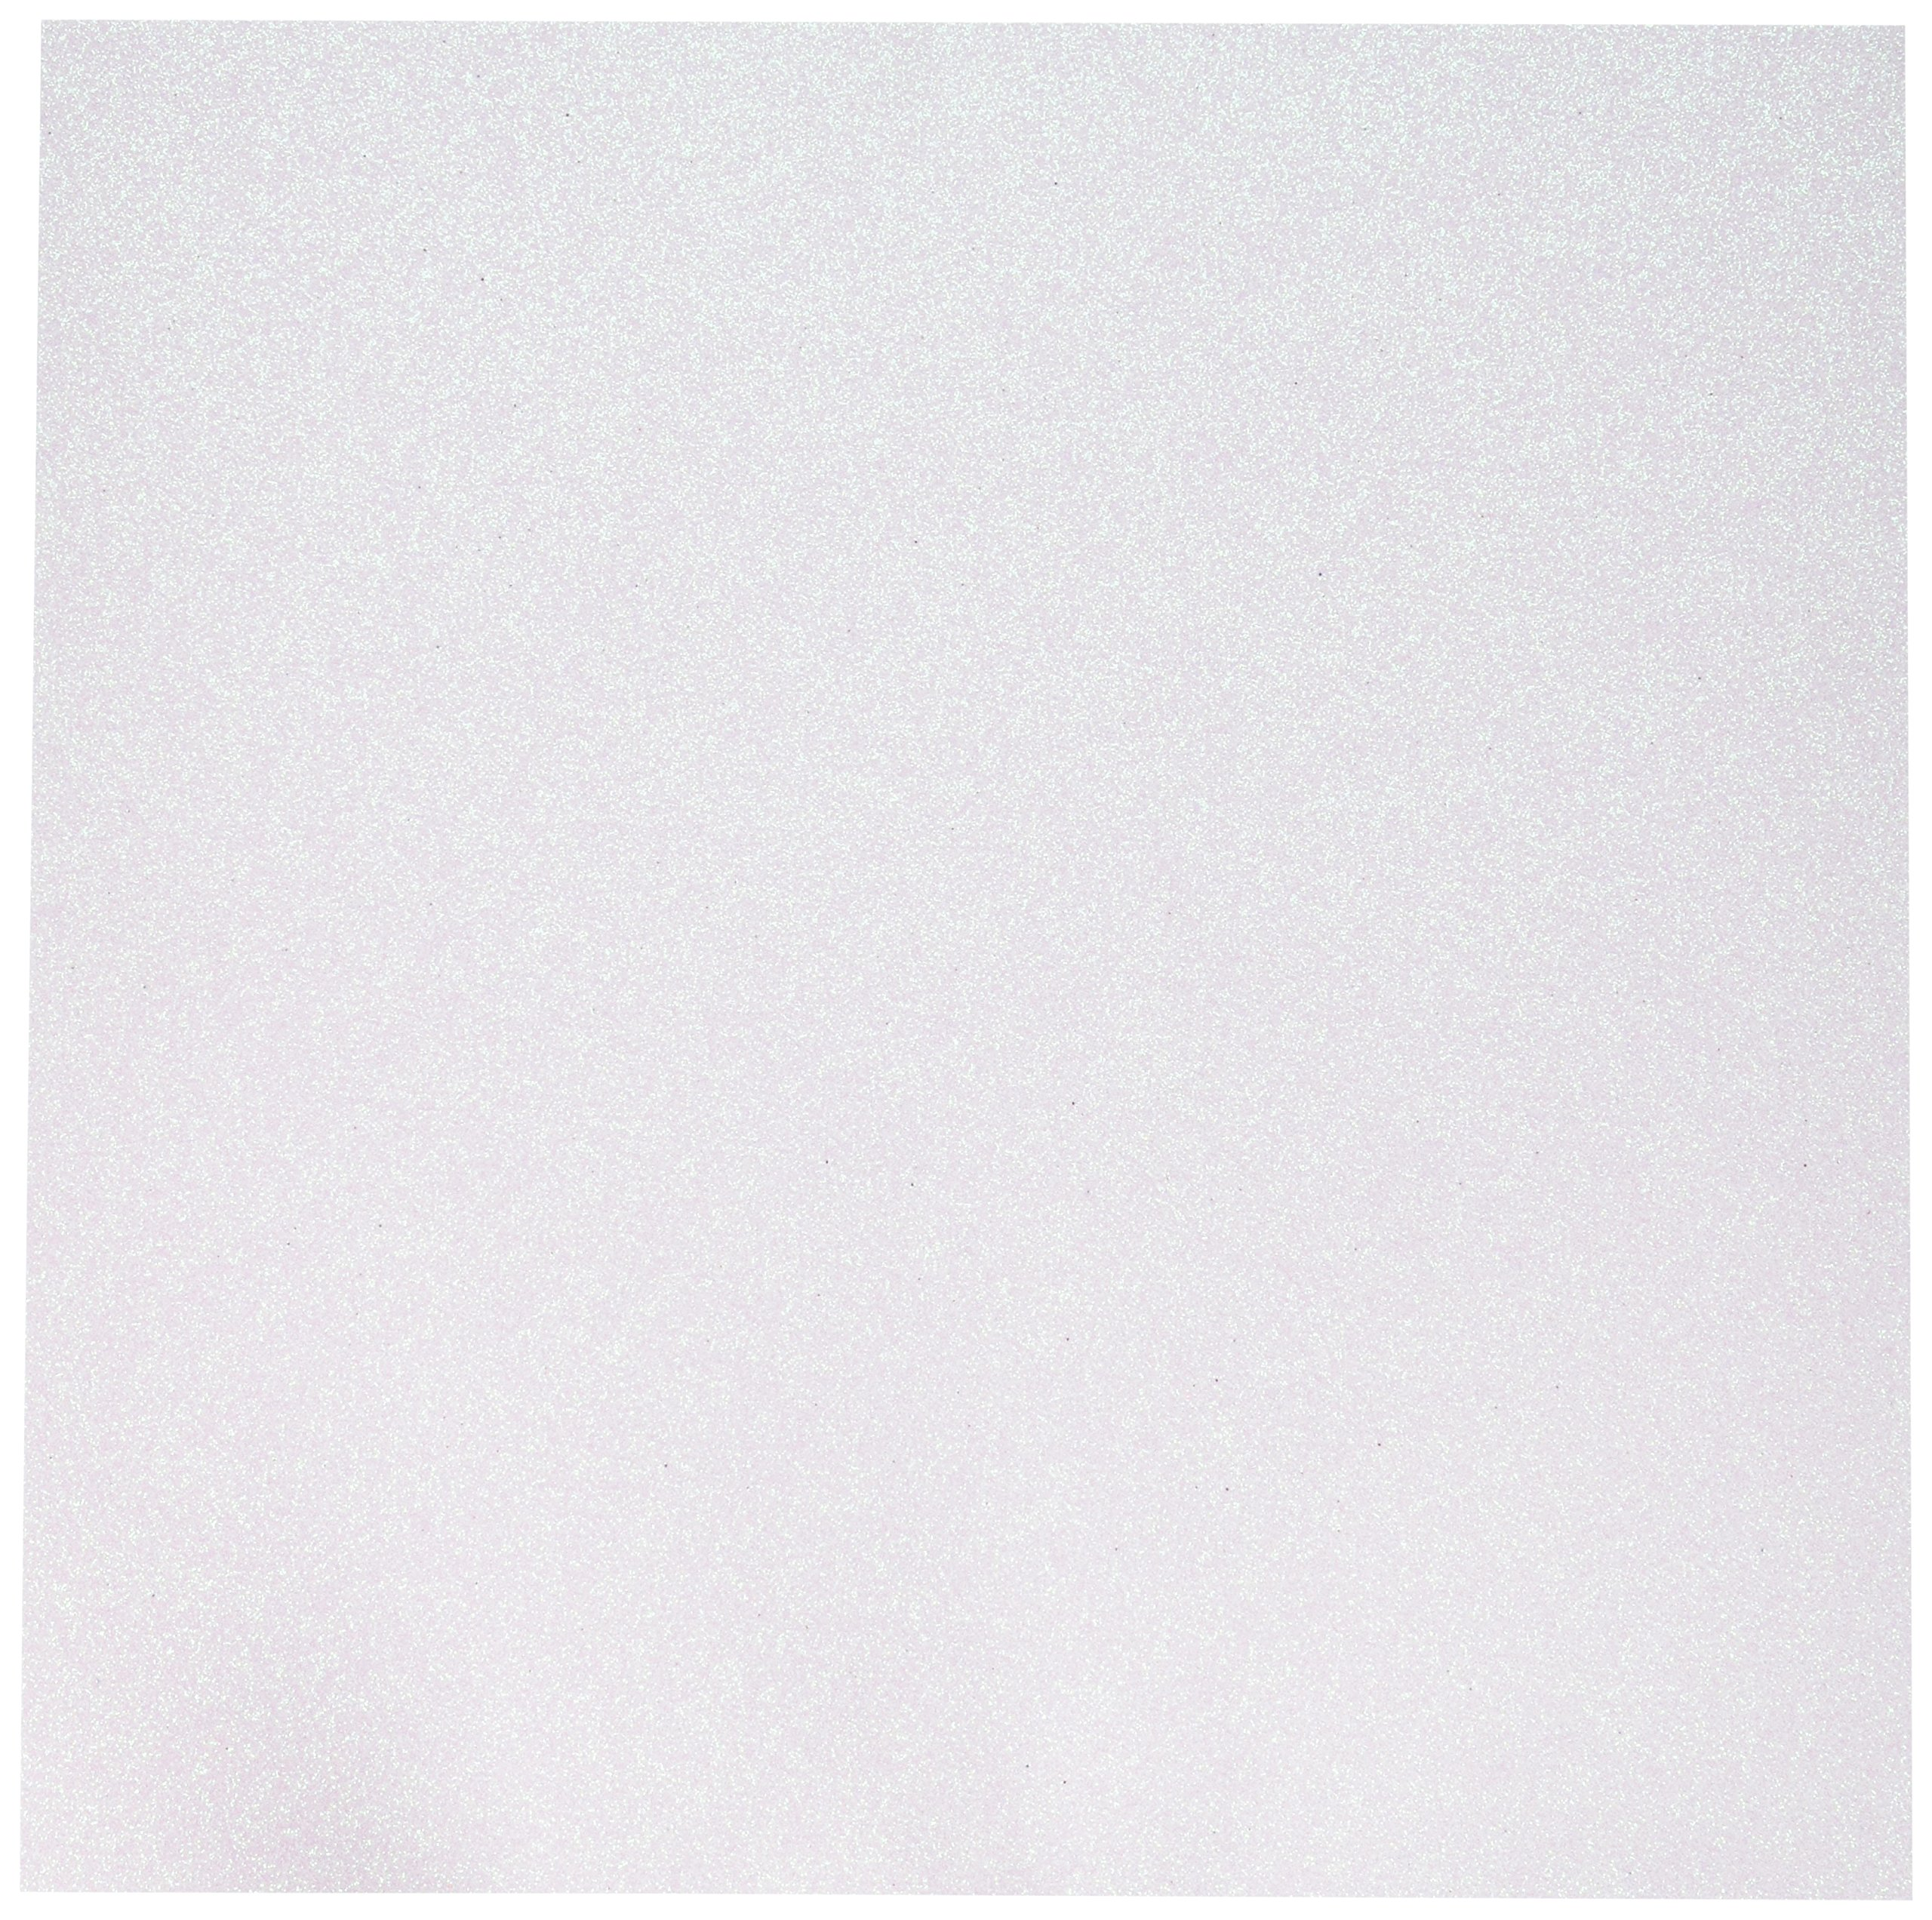 American Crafts Glitter Cardstock, 12 by 12-Inch, White (15 sheets per pack) by American Crafts